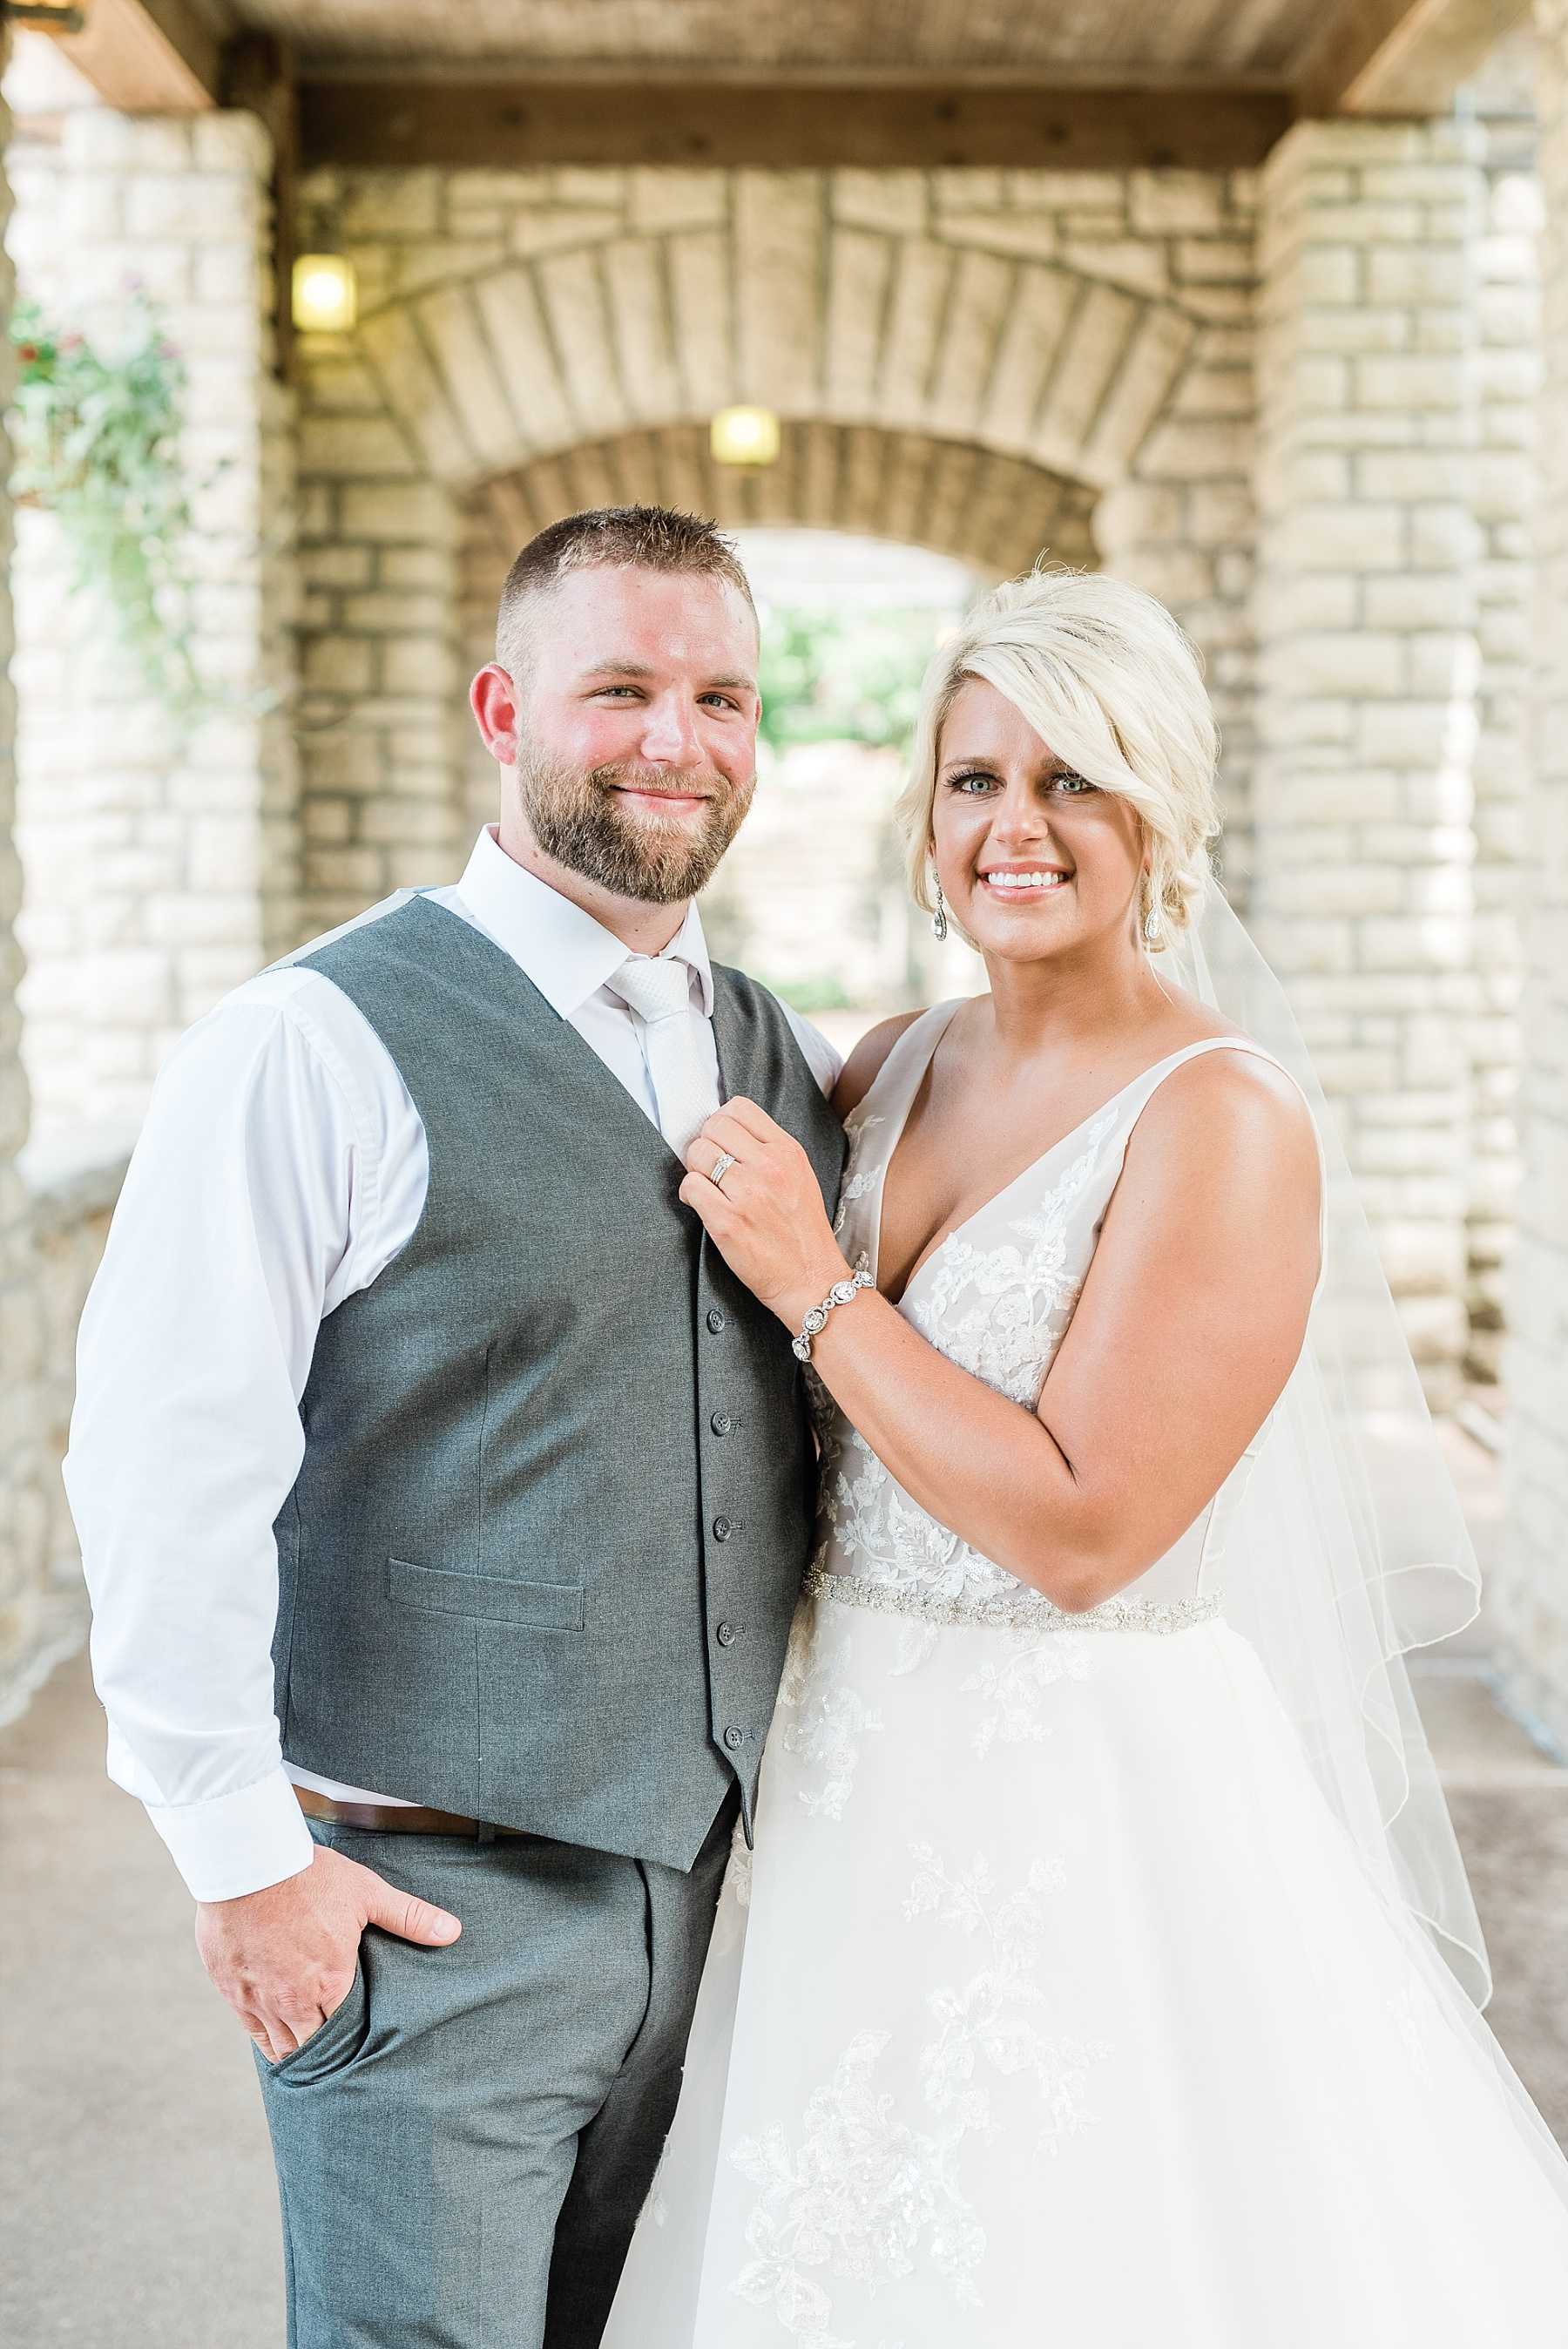 Rose Gold, White, and Greenery High Class Summer Wedding at The Millbottom in Downtown Jefferson City by Kelsi Kliethermes Photography_0023.jpg